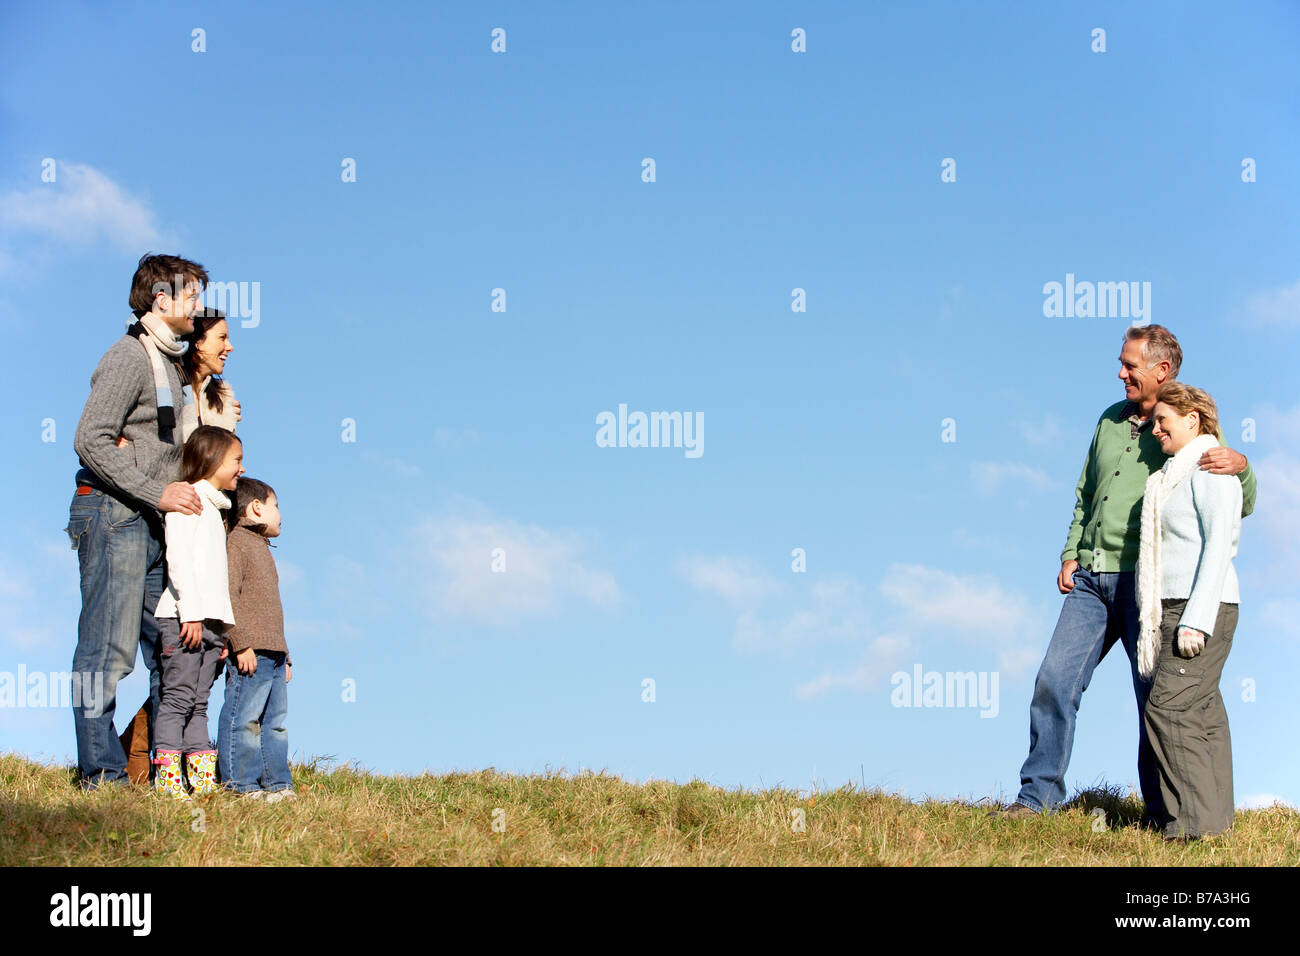 Family Standing In The Park - Stock Image